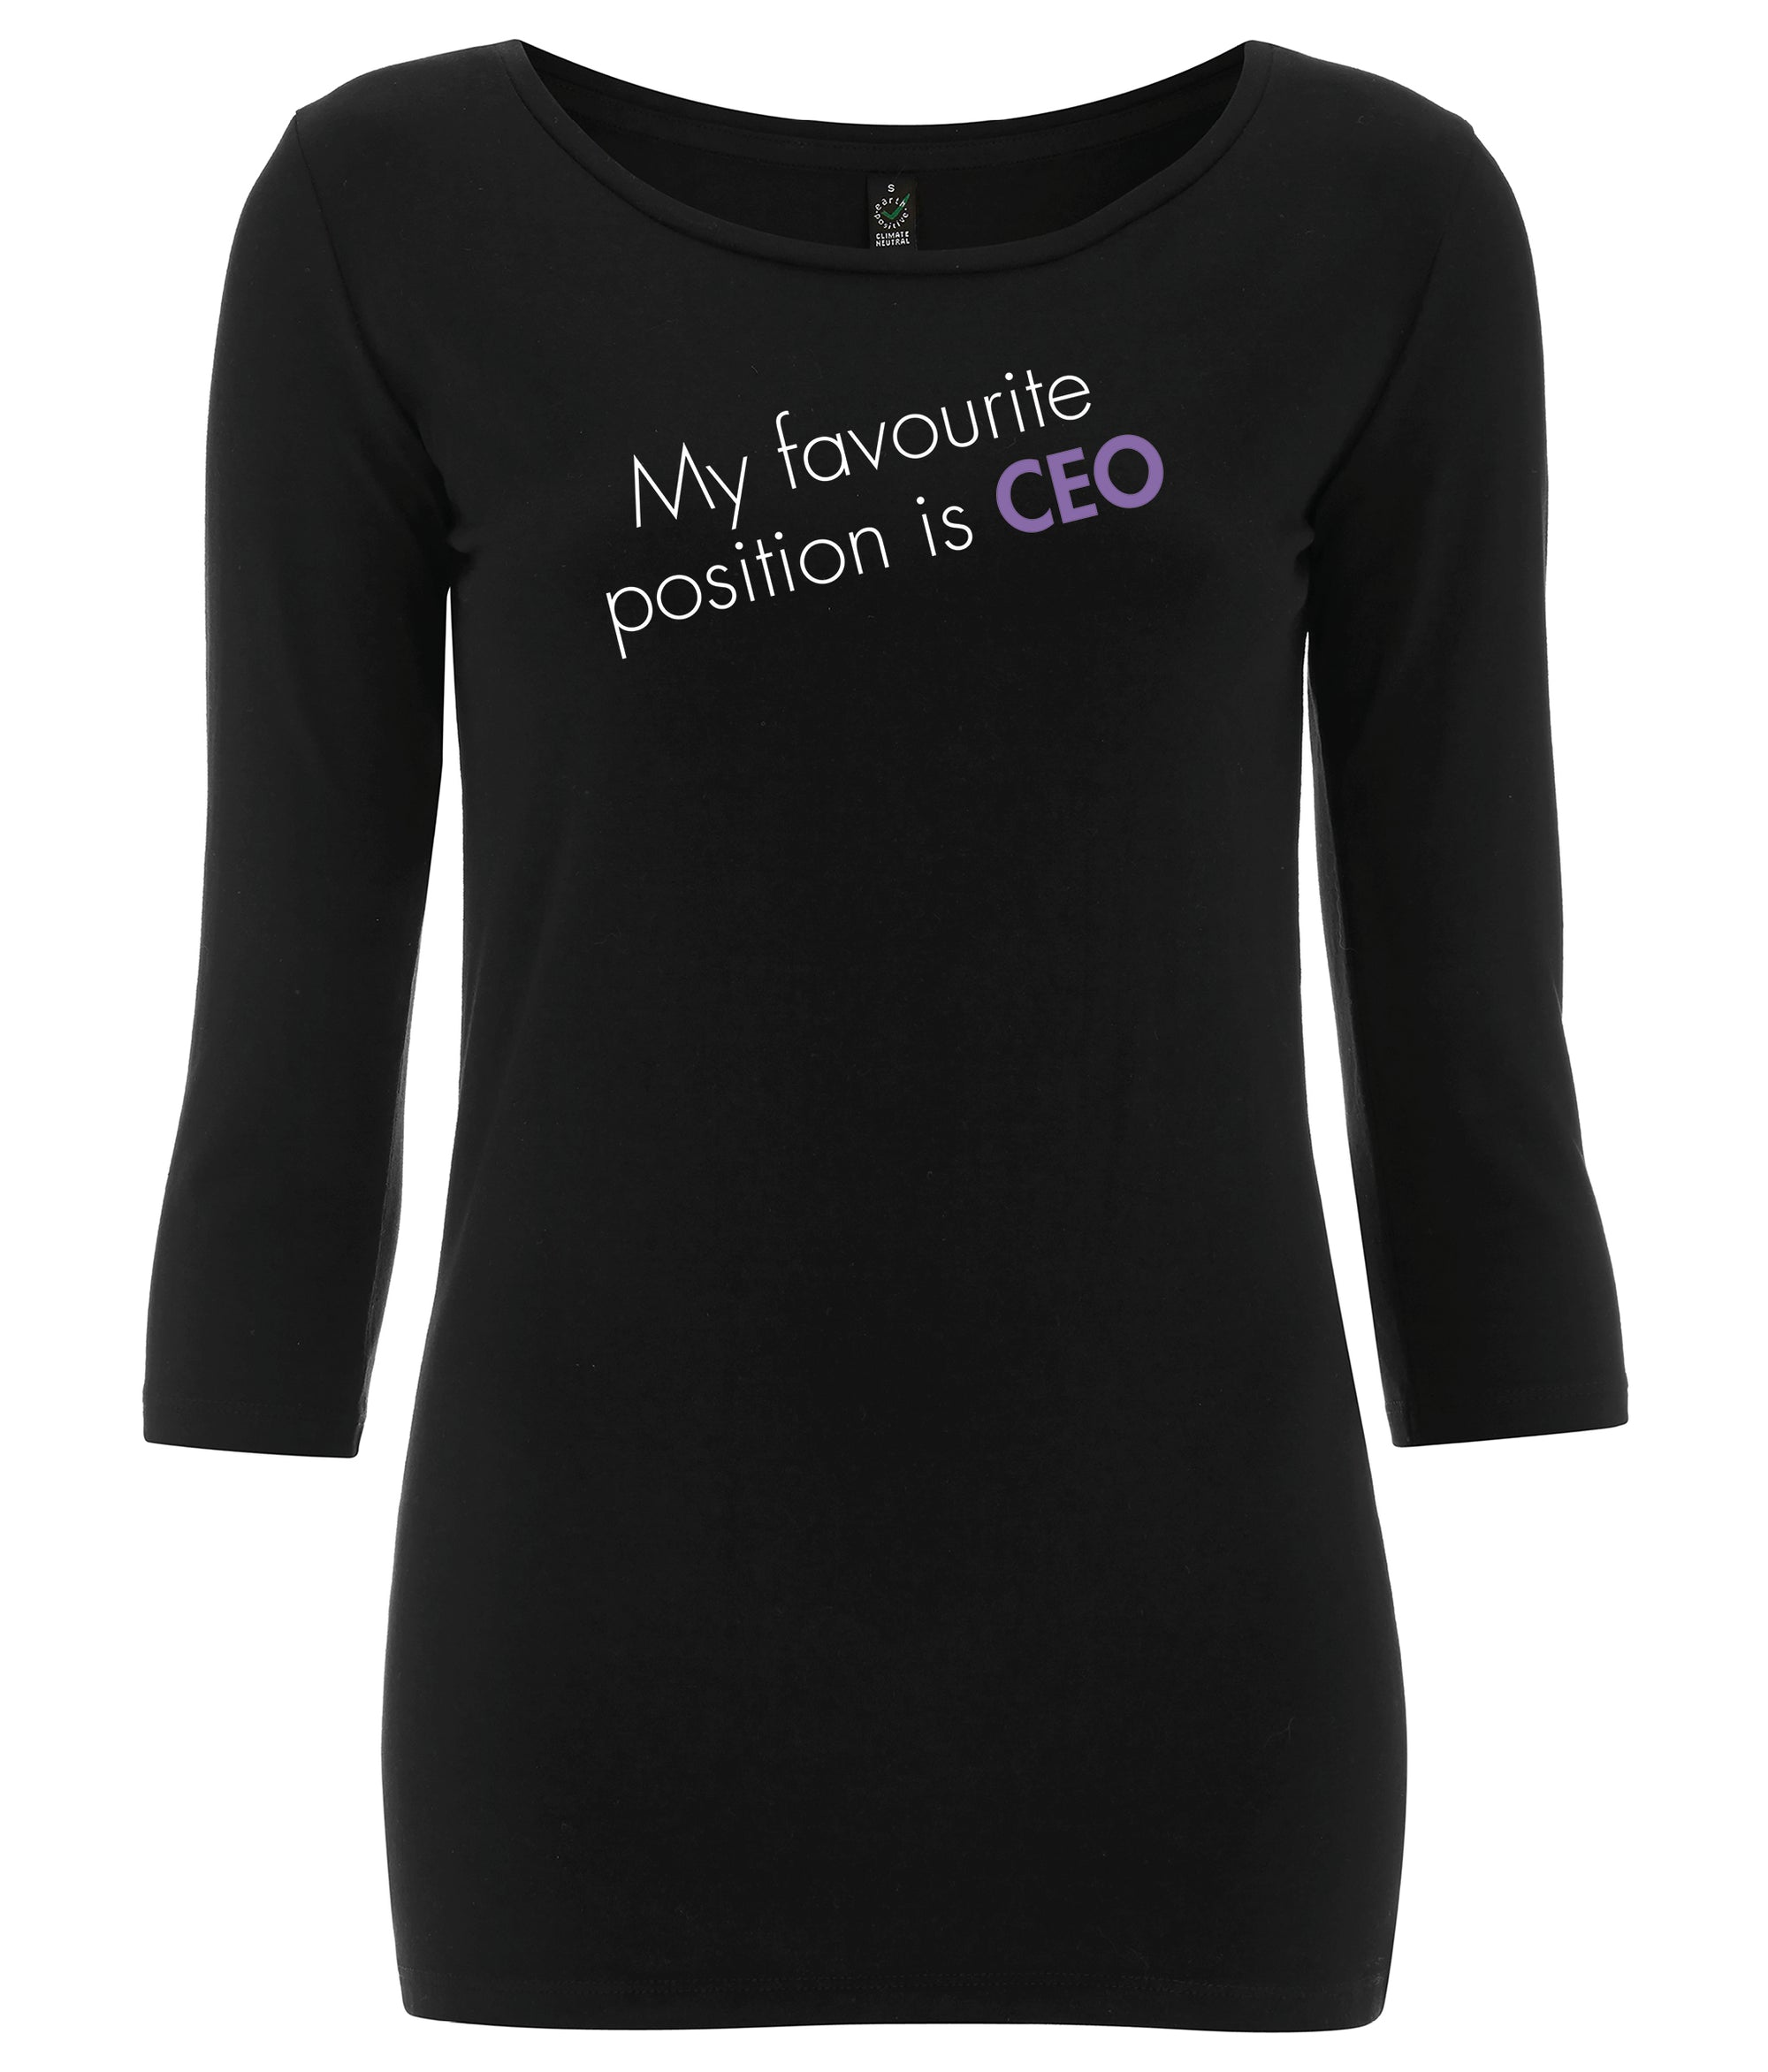 My Favourite Position Is CEO 3/4 Sleeve Organic Feminist T Shirt Black